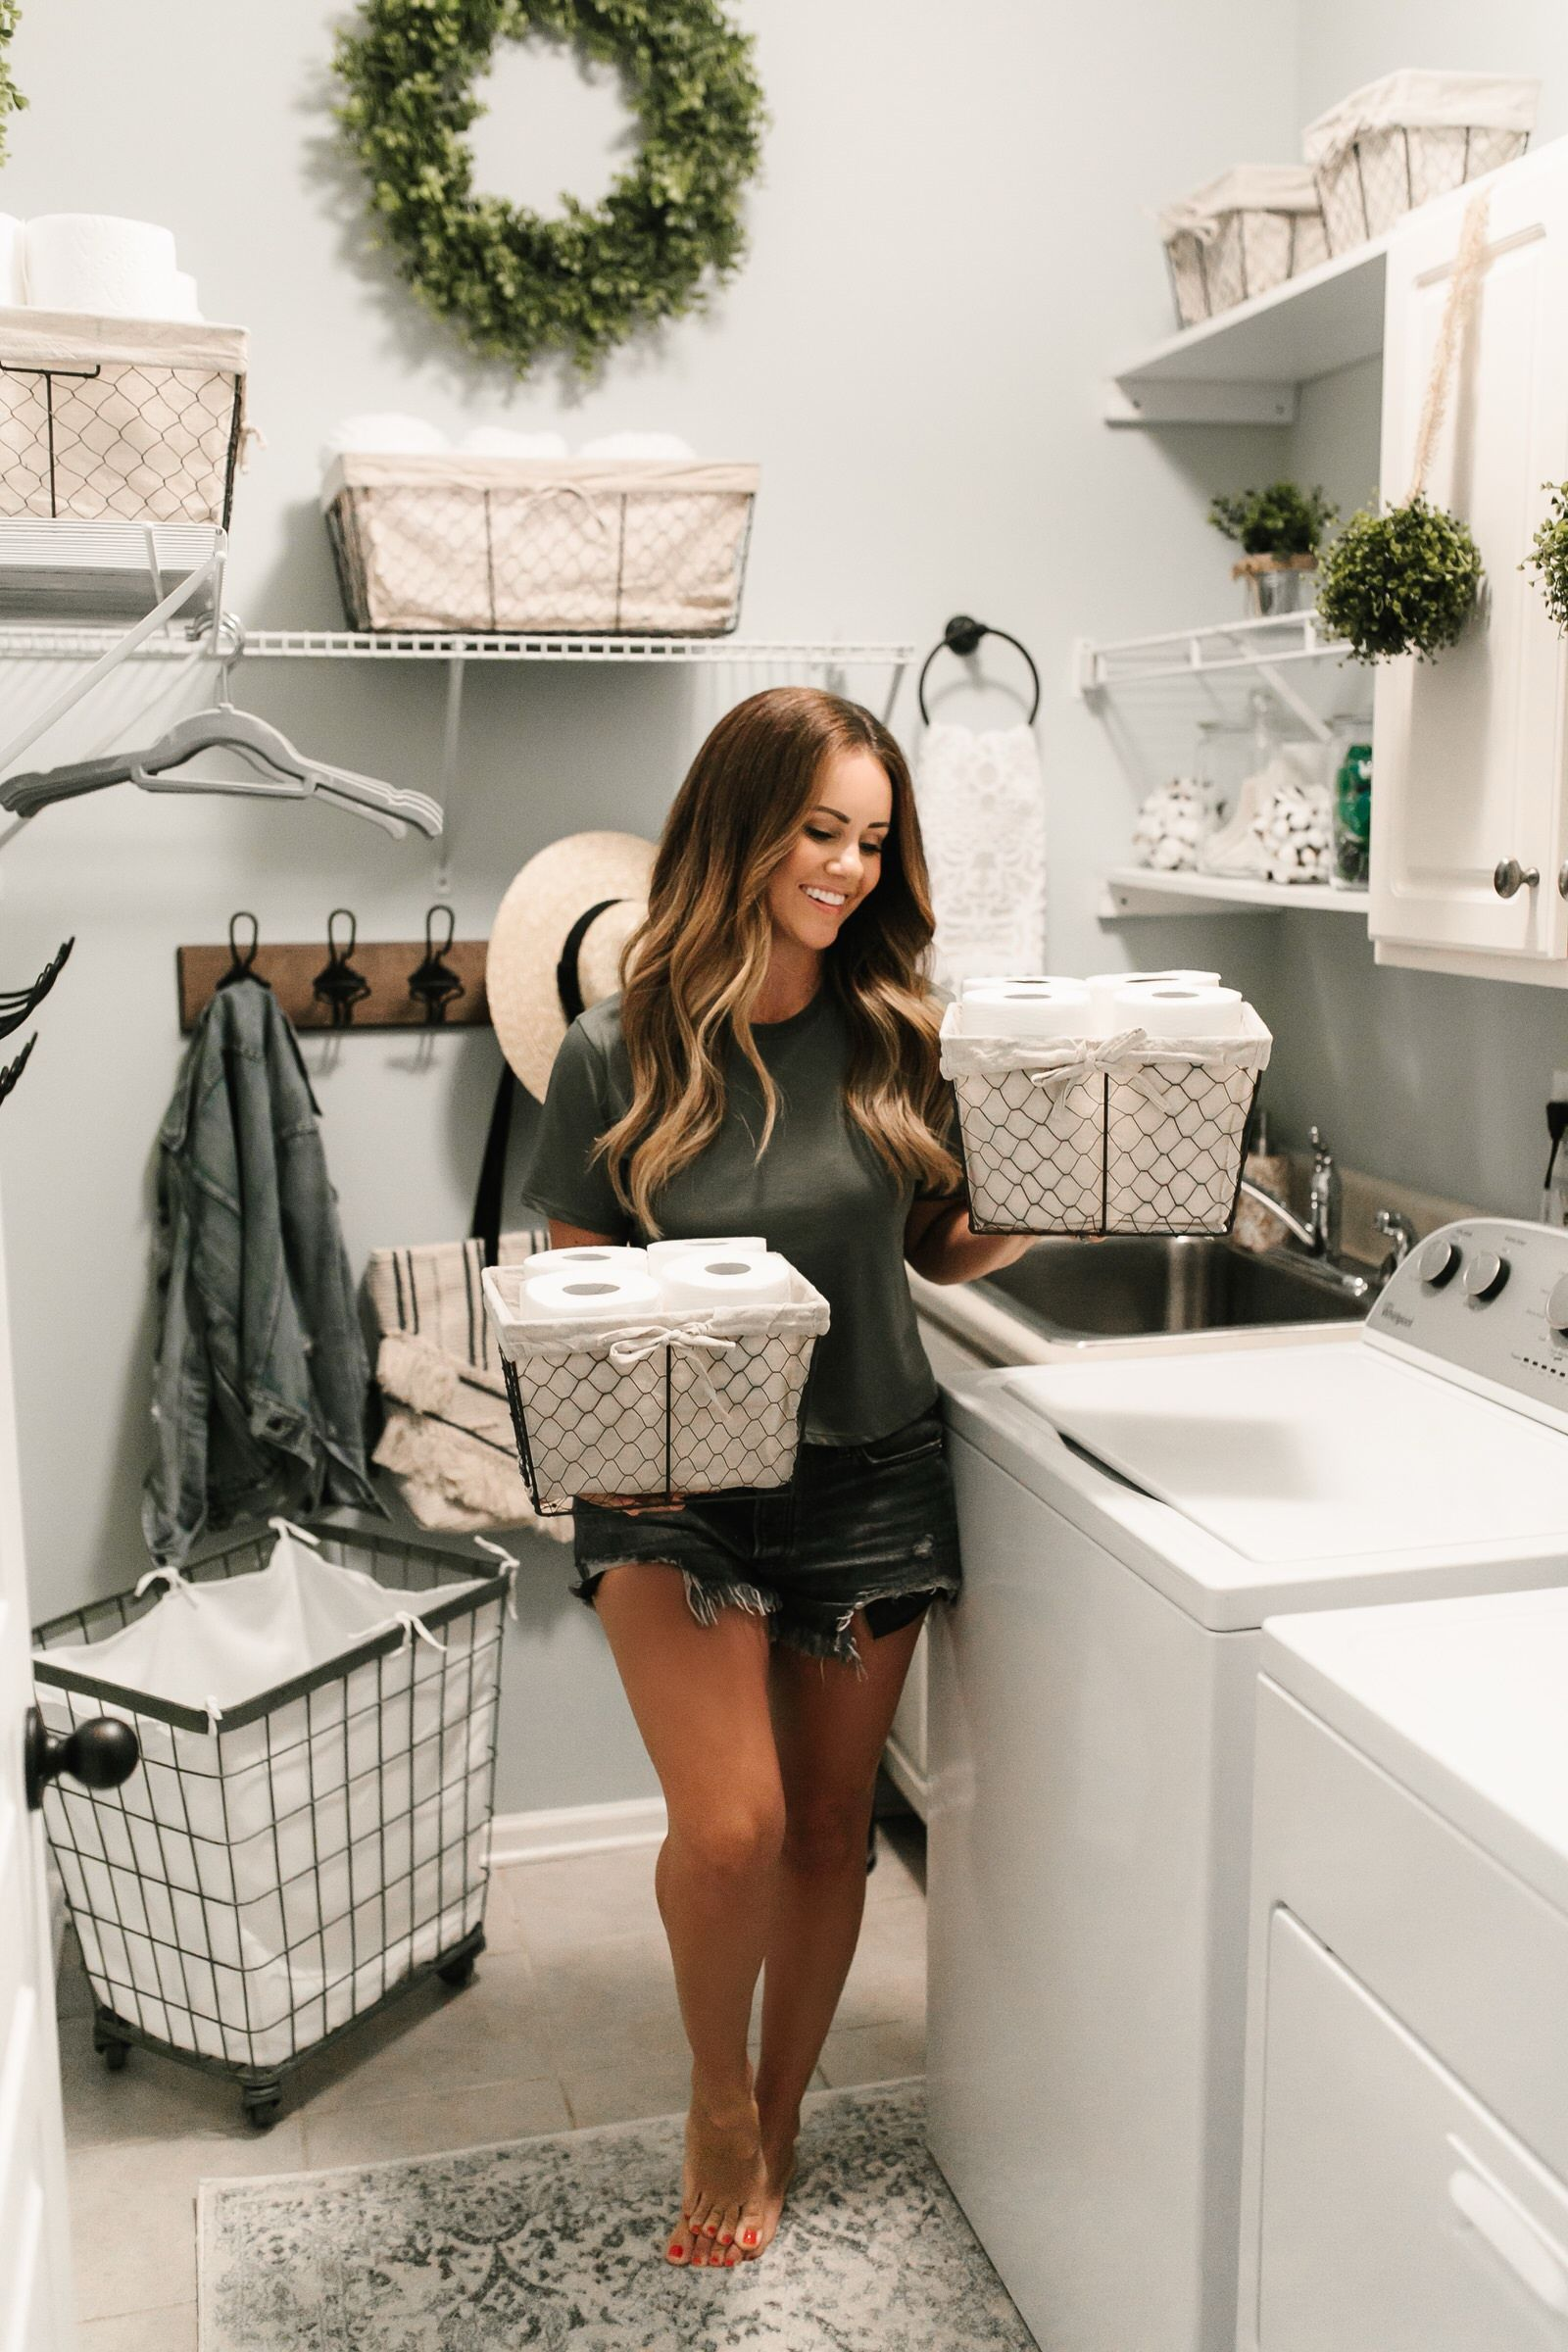 Kbstyled Laundry Room Ideas Small Space Laundry Room Storage Laundry Room Layouts